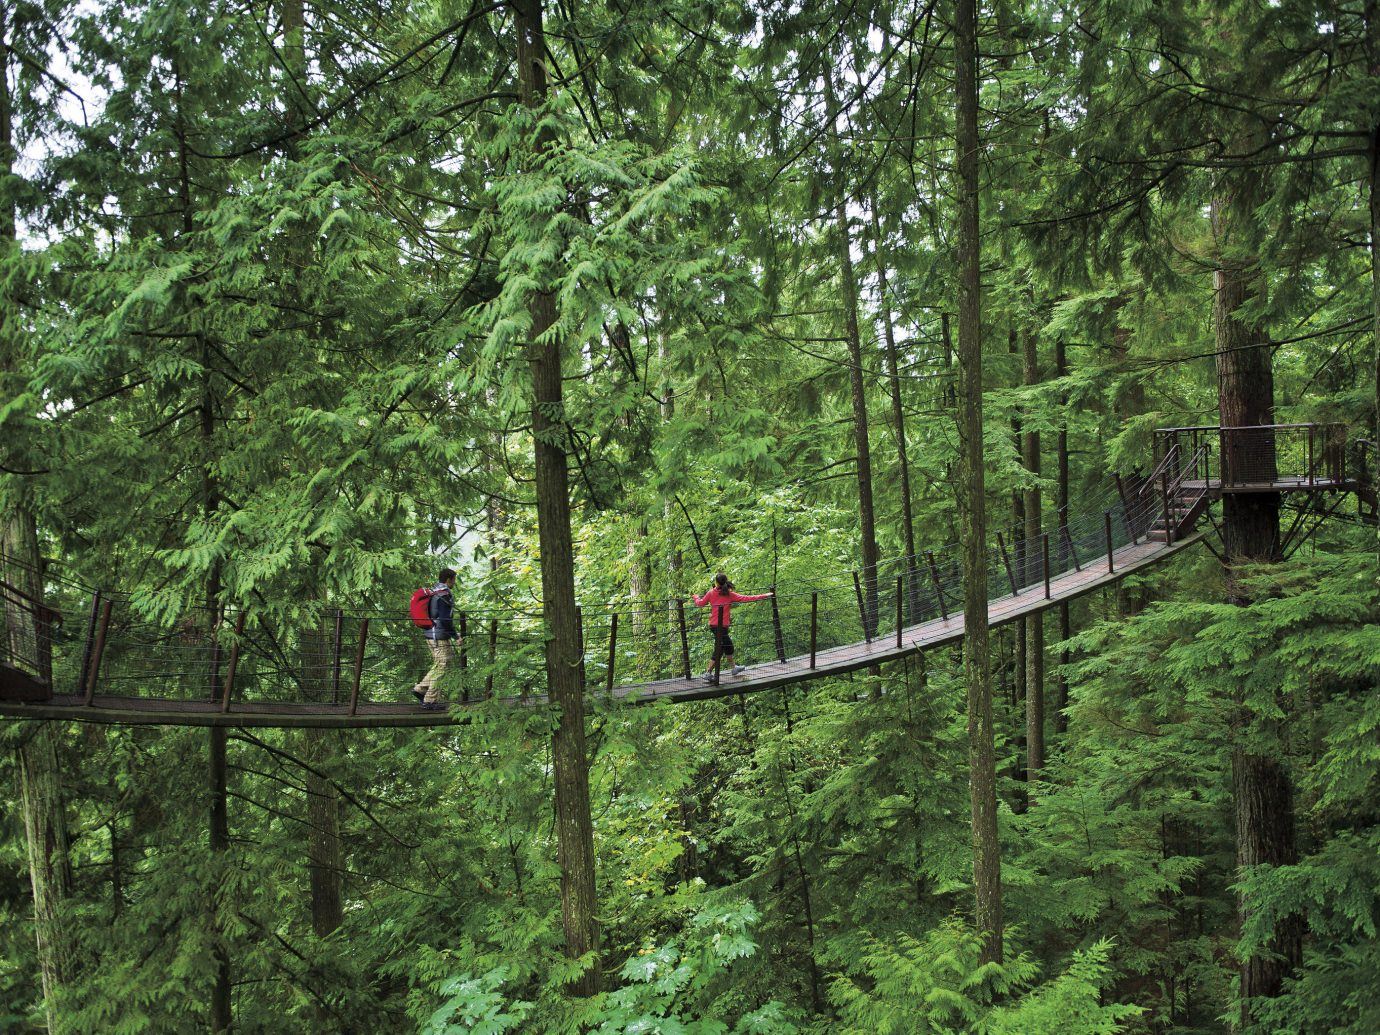 Trip Ideas tree outdoor Forest habitat wooded natural environment bridge wilderness ecosystem old growth forest woodland rainforest canopy walkway temperate broadleaf and mixed forest wood temperate coniferous forest biome trail Jungle suspension bridge plant area lush surrounded